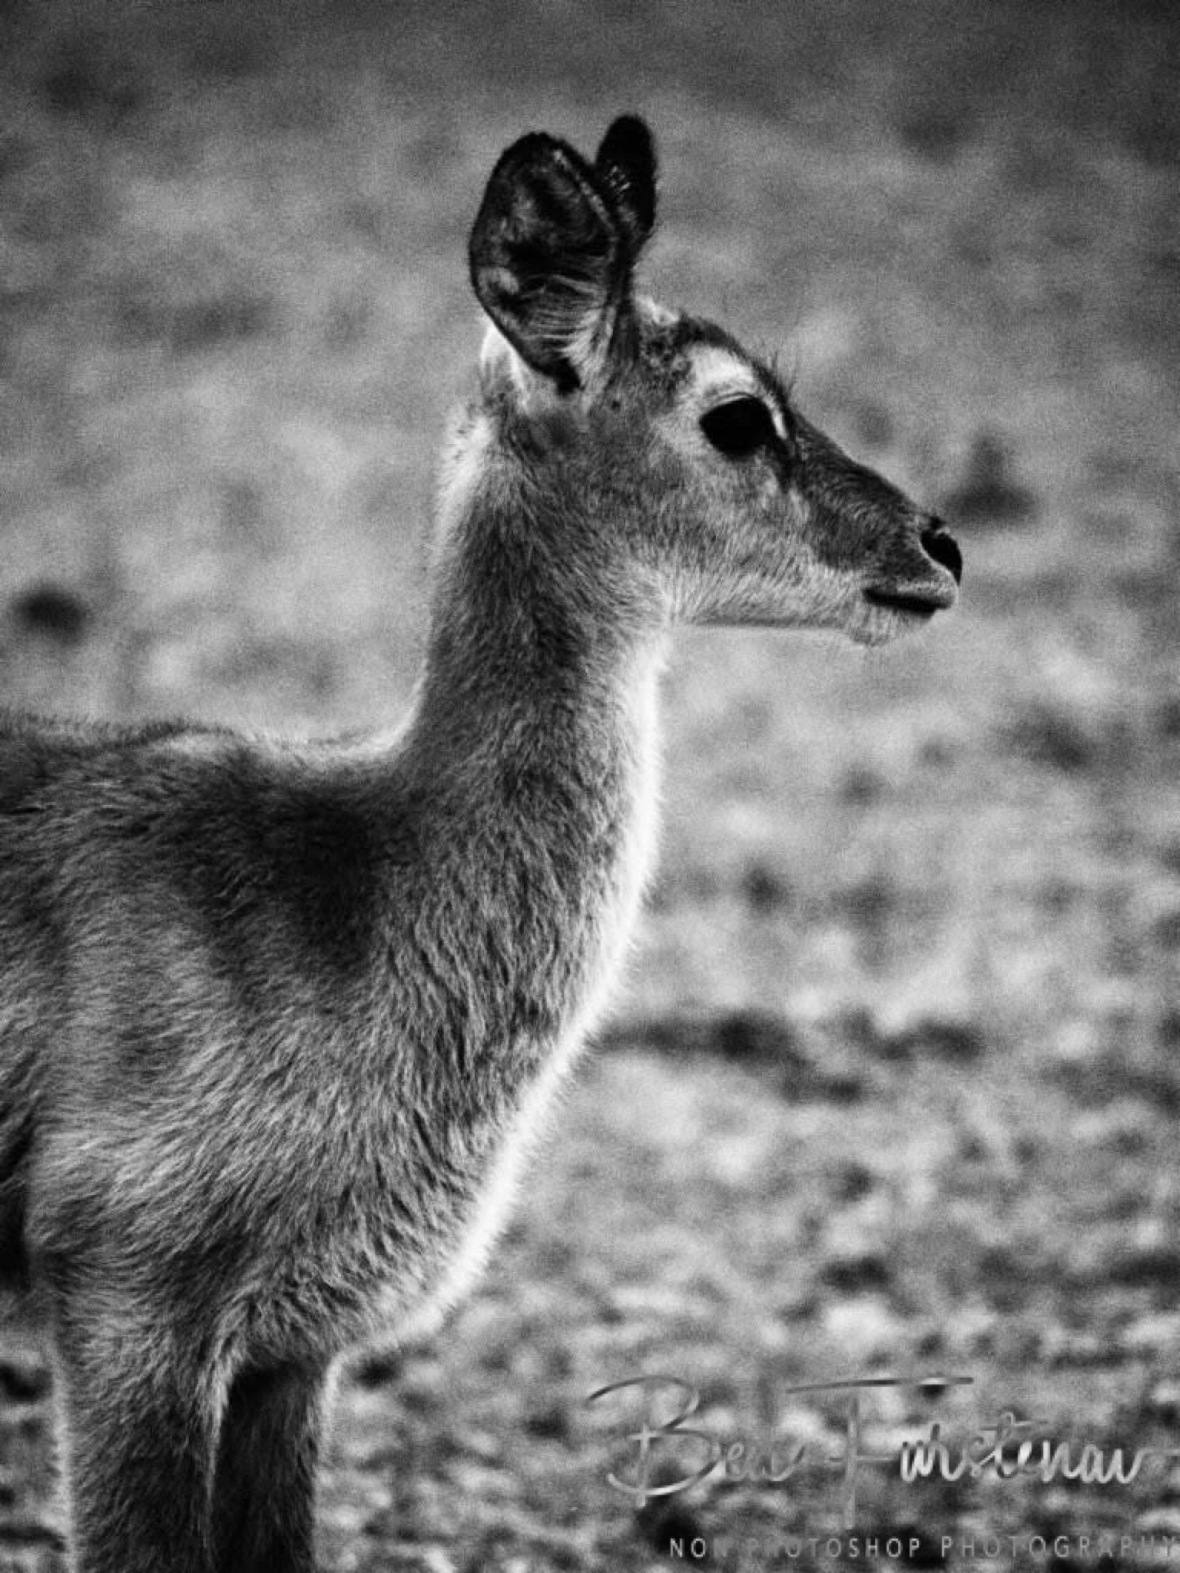 Even in black and white, an eyeful, South Luangwa National Park, Zambia